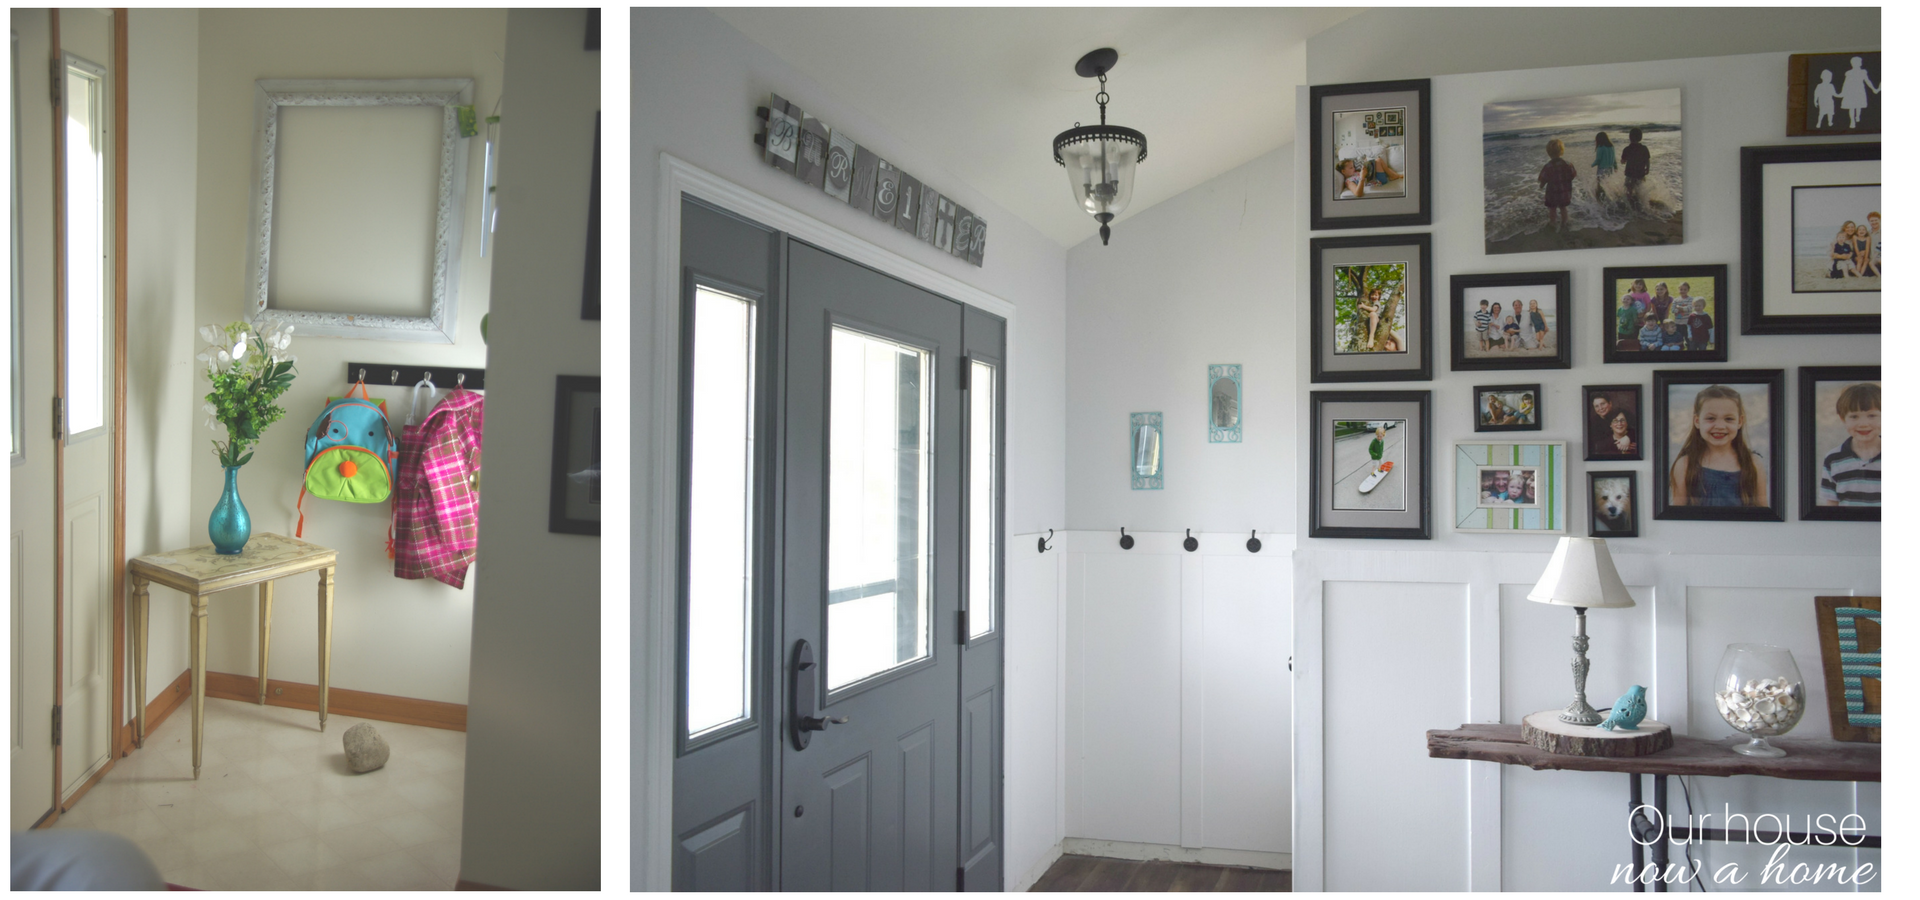 Entryway tour and ideas – Room By Room series week 1